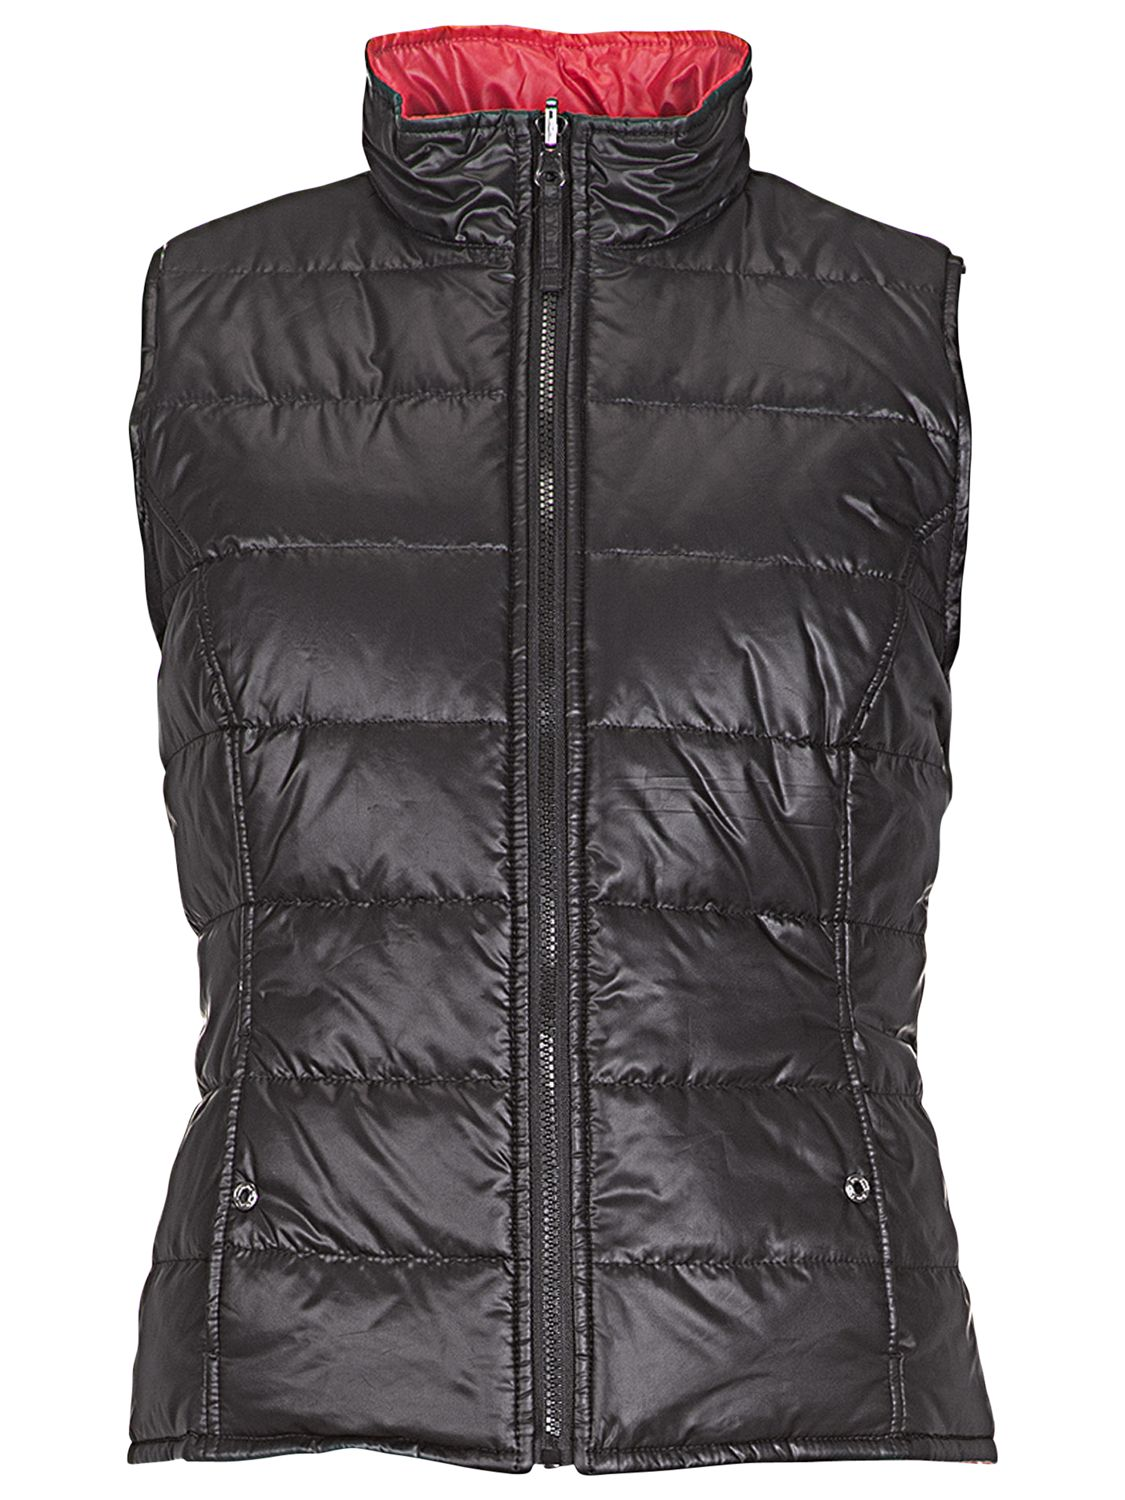 Betty Barclay Reversible Padded Gilet, Black / Red